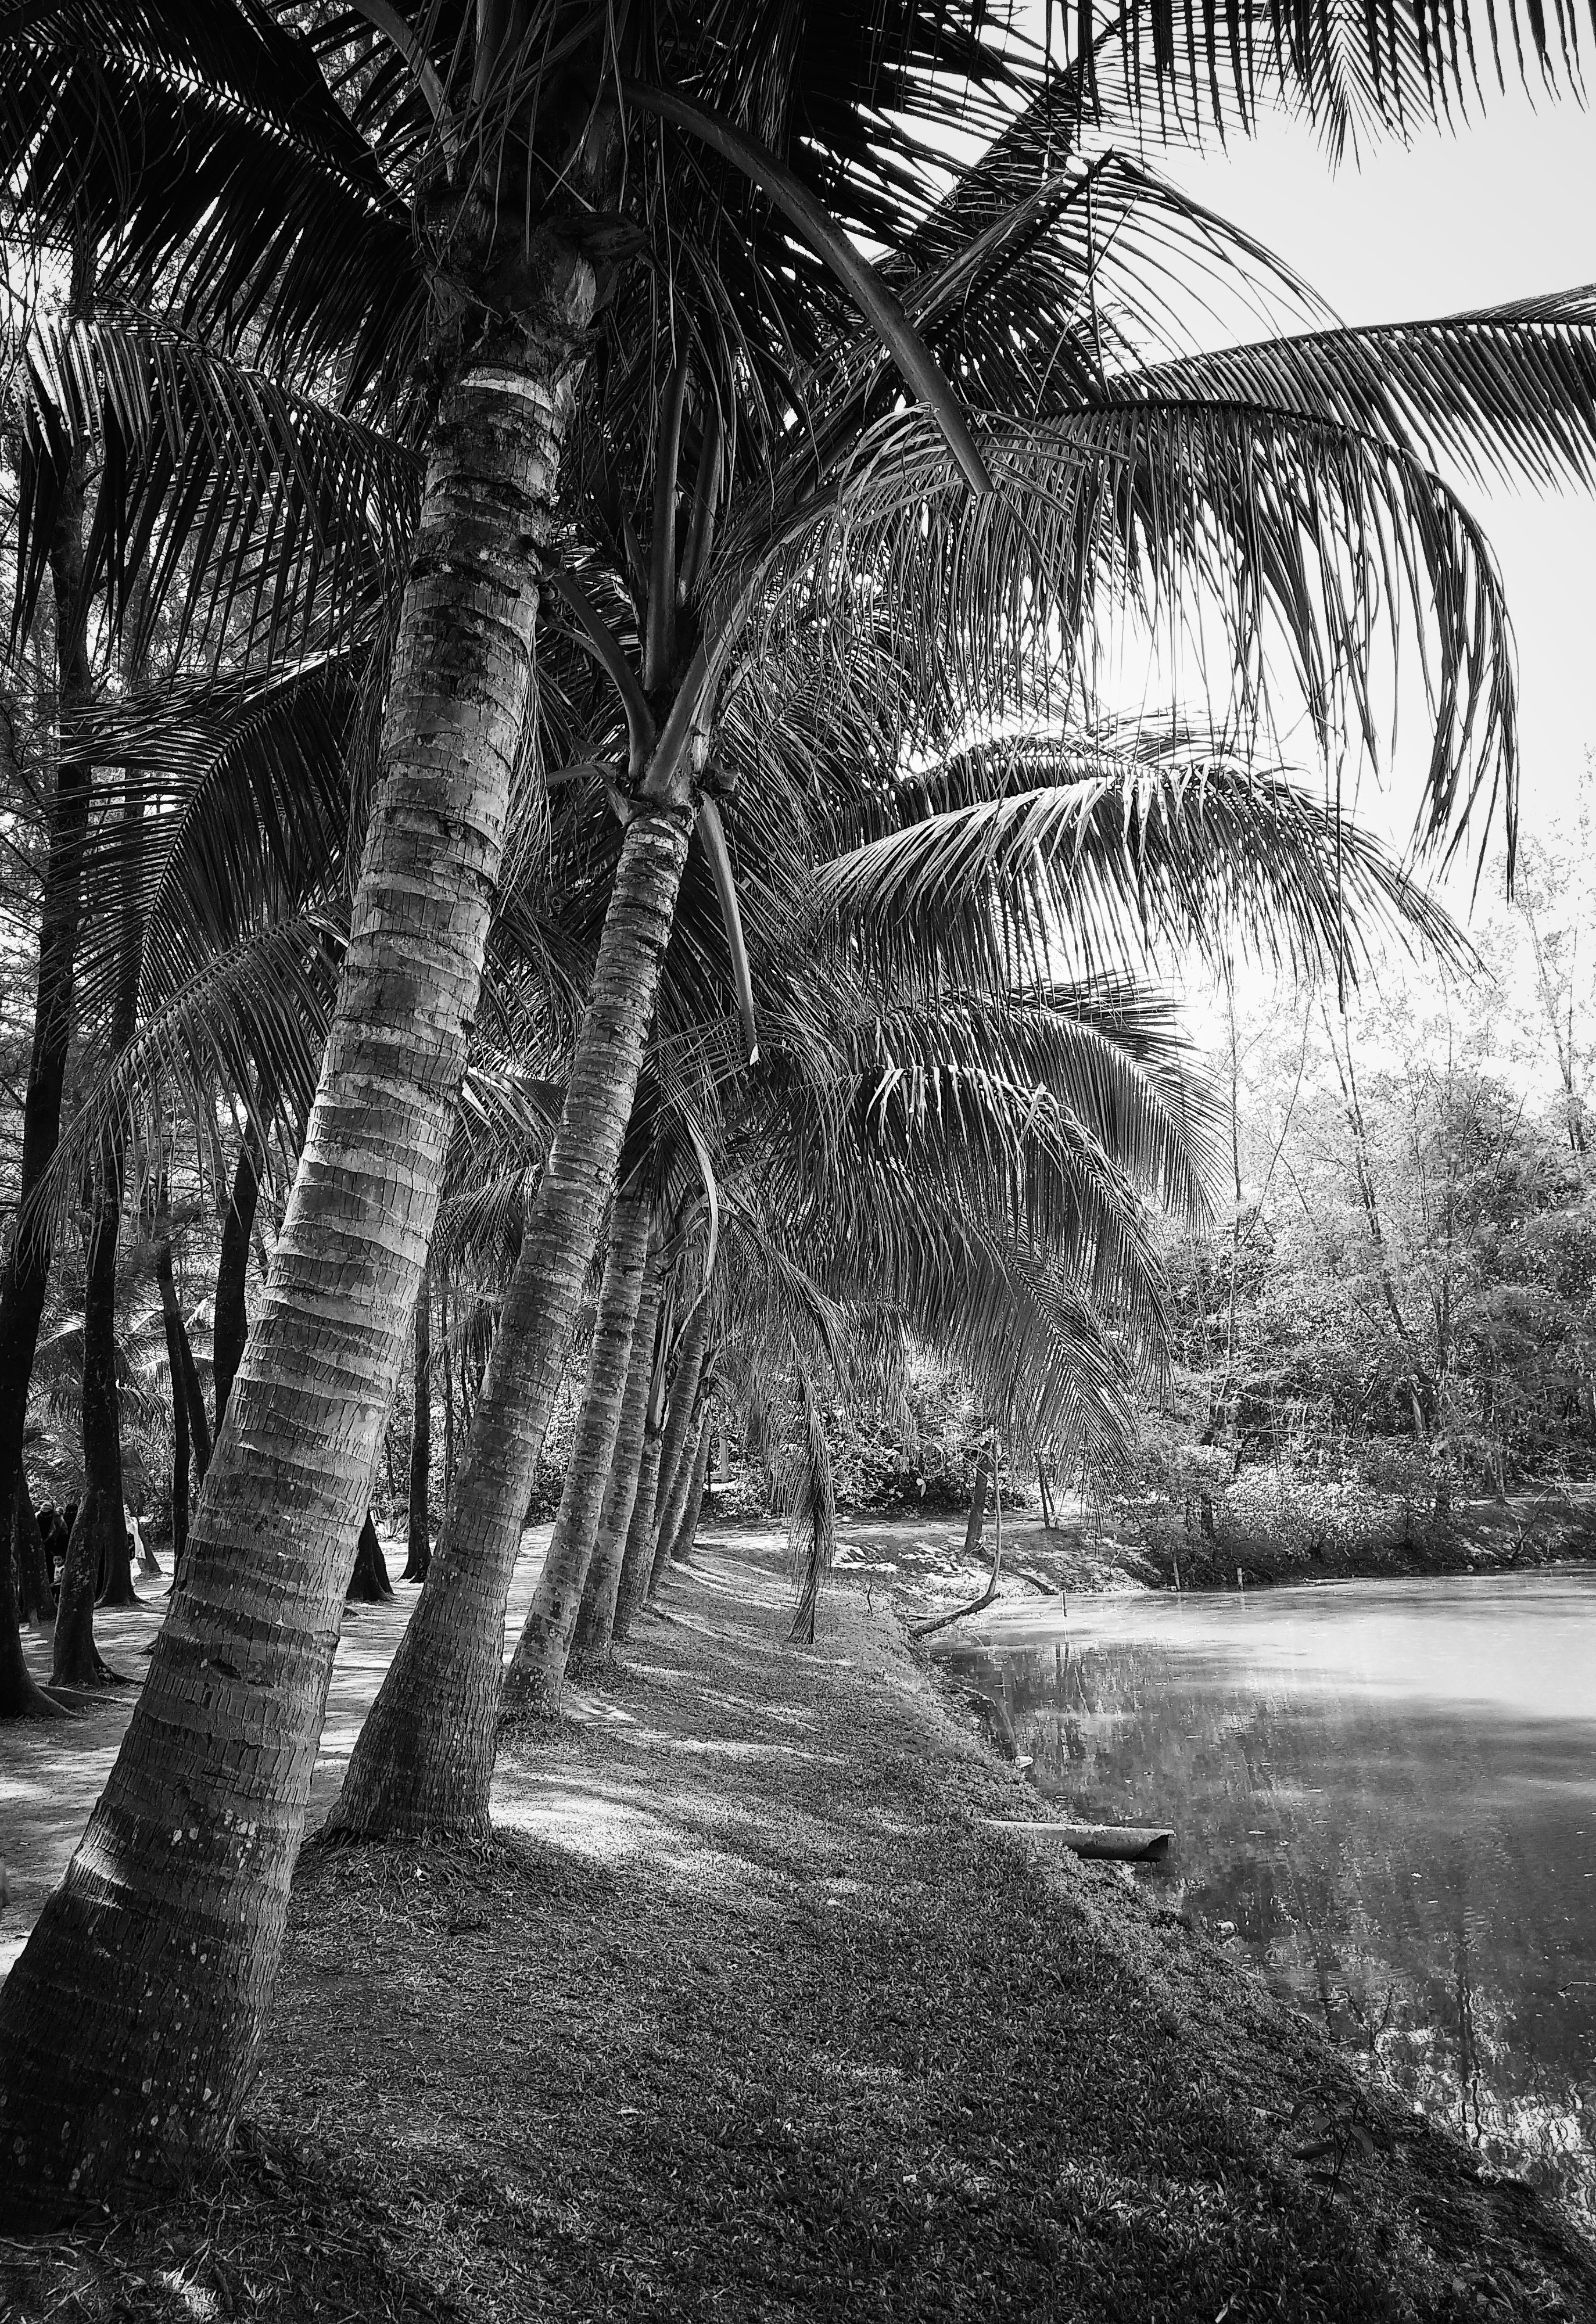 Grayscale Photography of Coconut Trees Beside Body of Water, Black and white, Recreation, Water, Vacation, HQ Photo